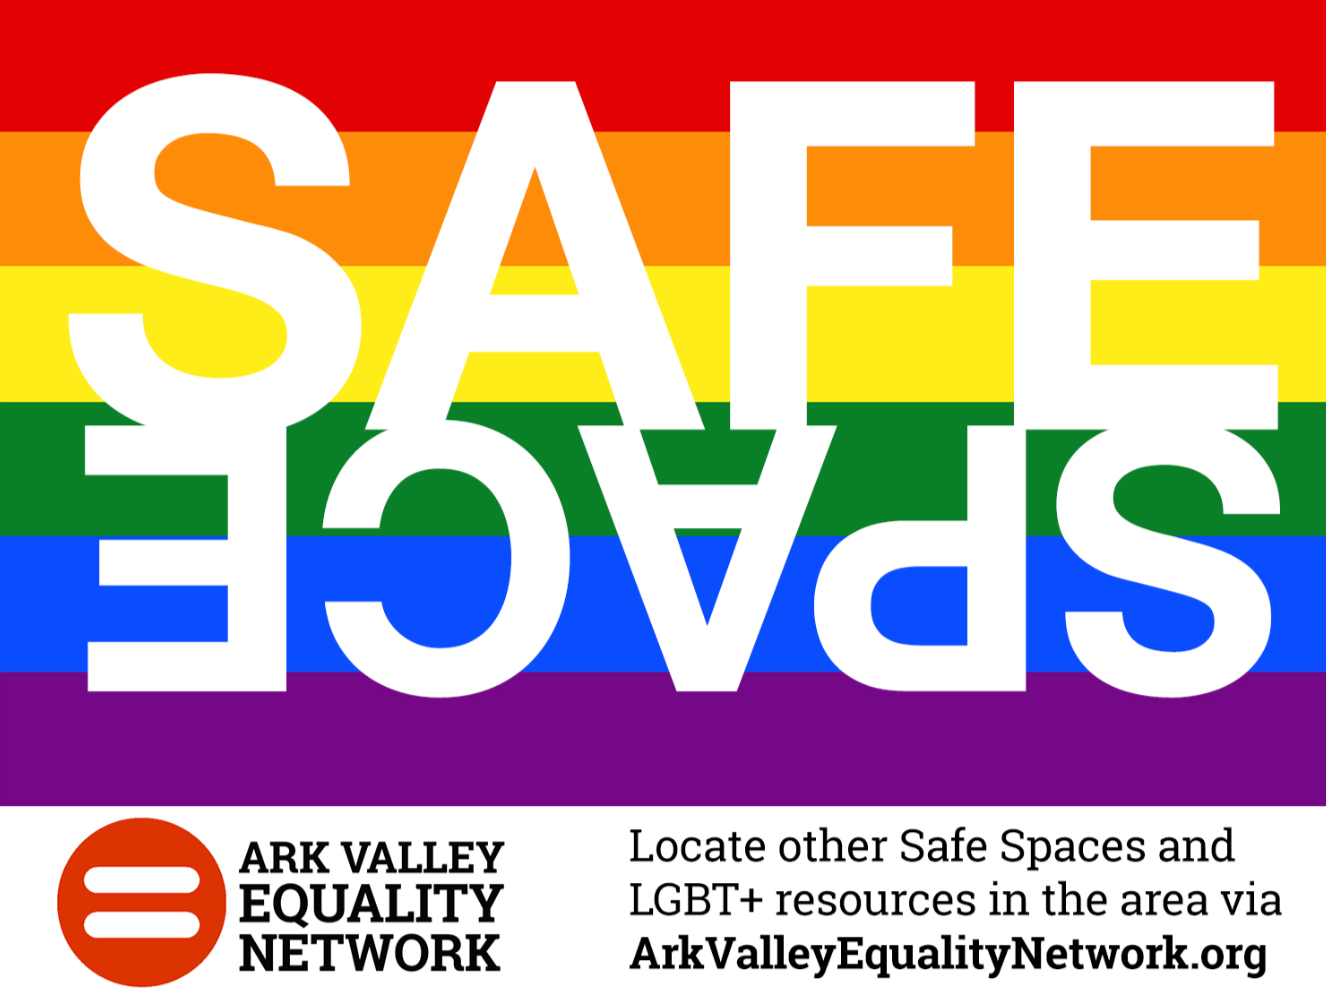 Safe Space stickers will be present in businesses who take the pledge and commit to providing a safe and inclusive environment. We also recommend that businesses take the next step and sign up to be  Safe Zone trained !